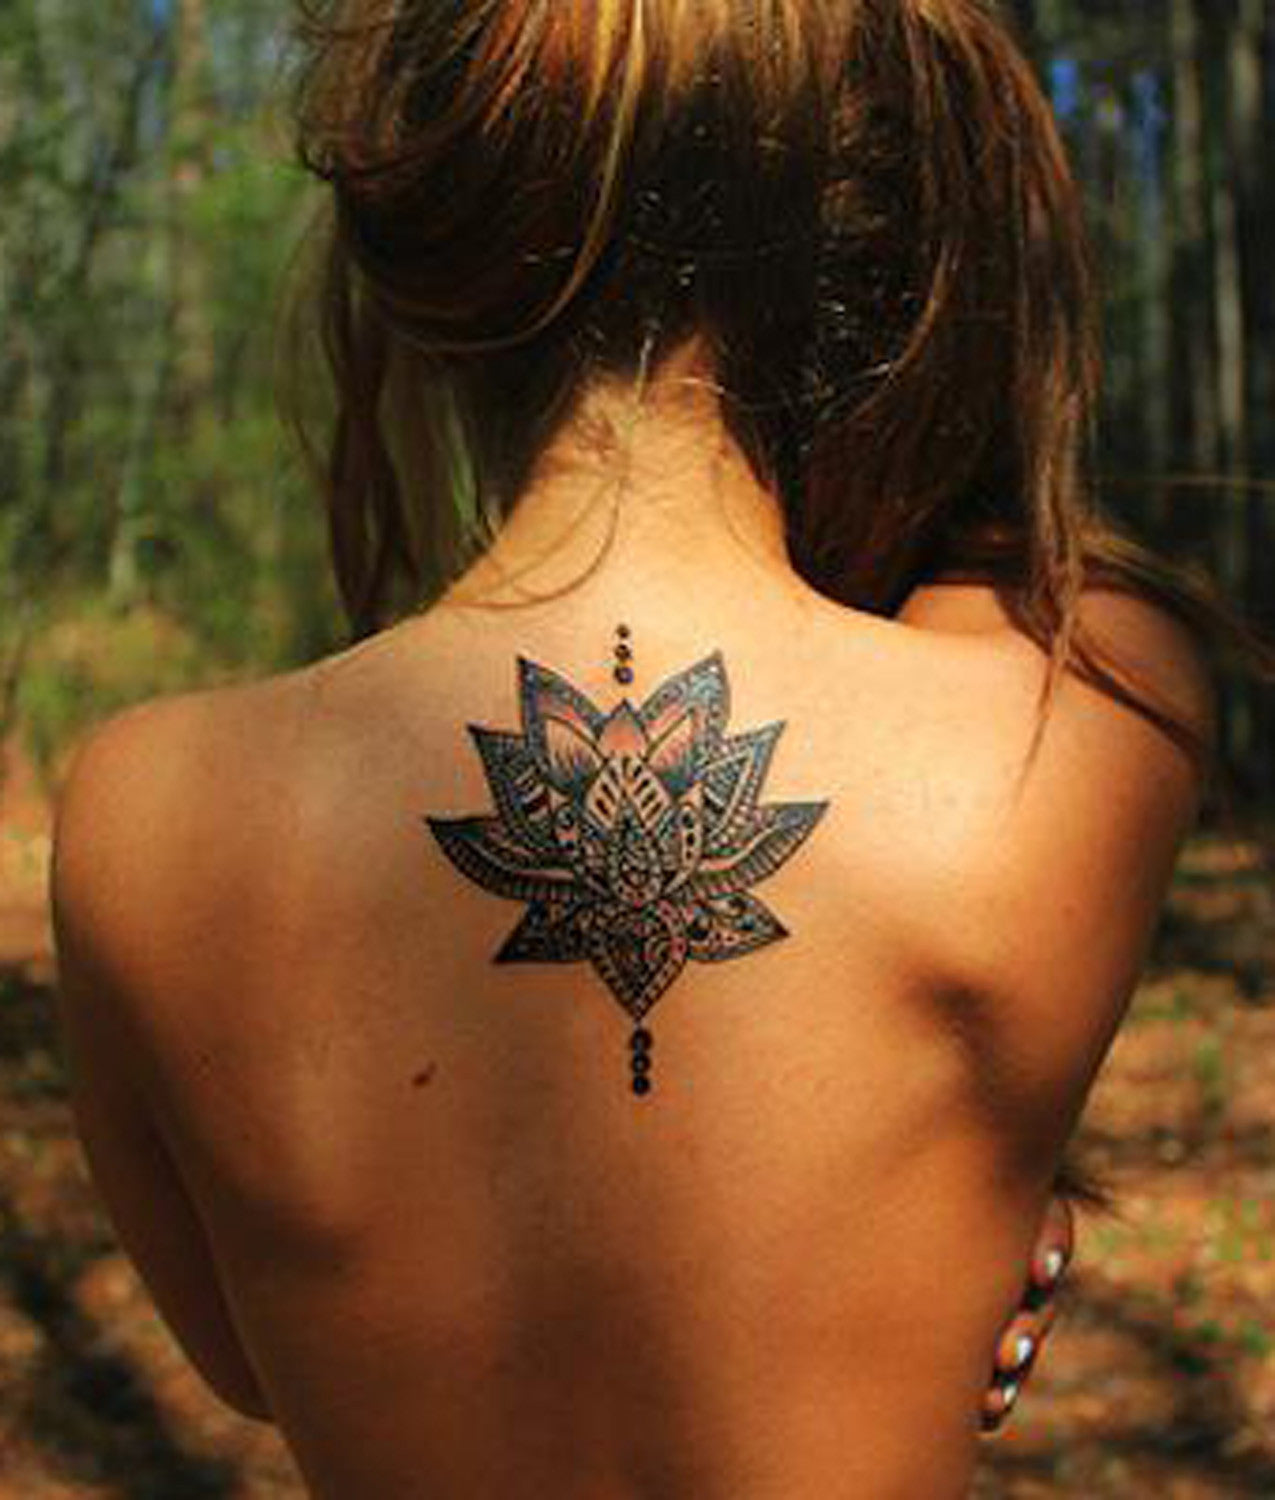 100 most popular lotus tattoos ideas for women mybodiart tribal lotus upper back tattoo ideas for women at mybodiart izmirmasajfo